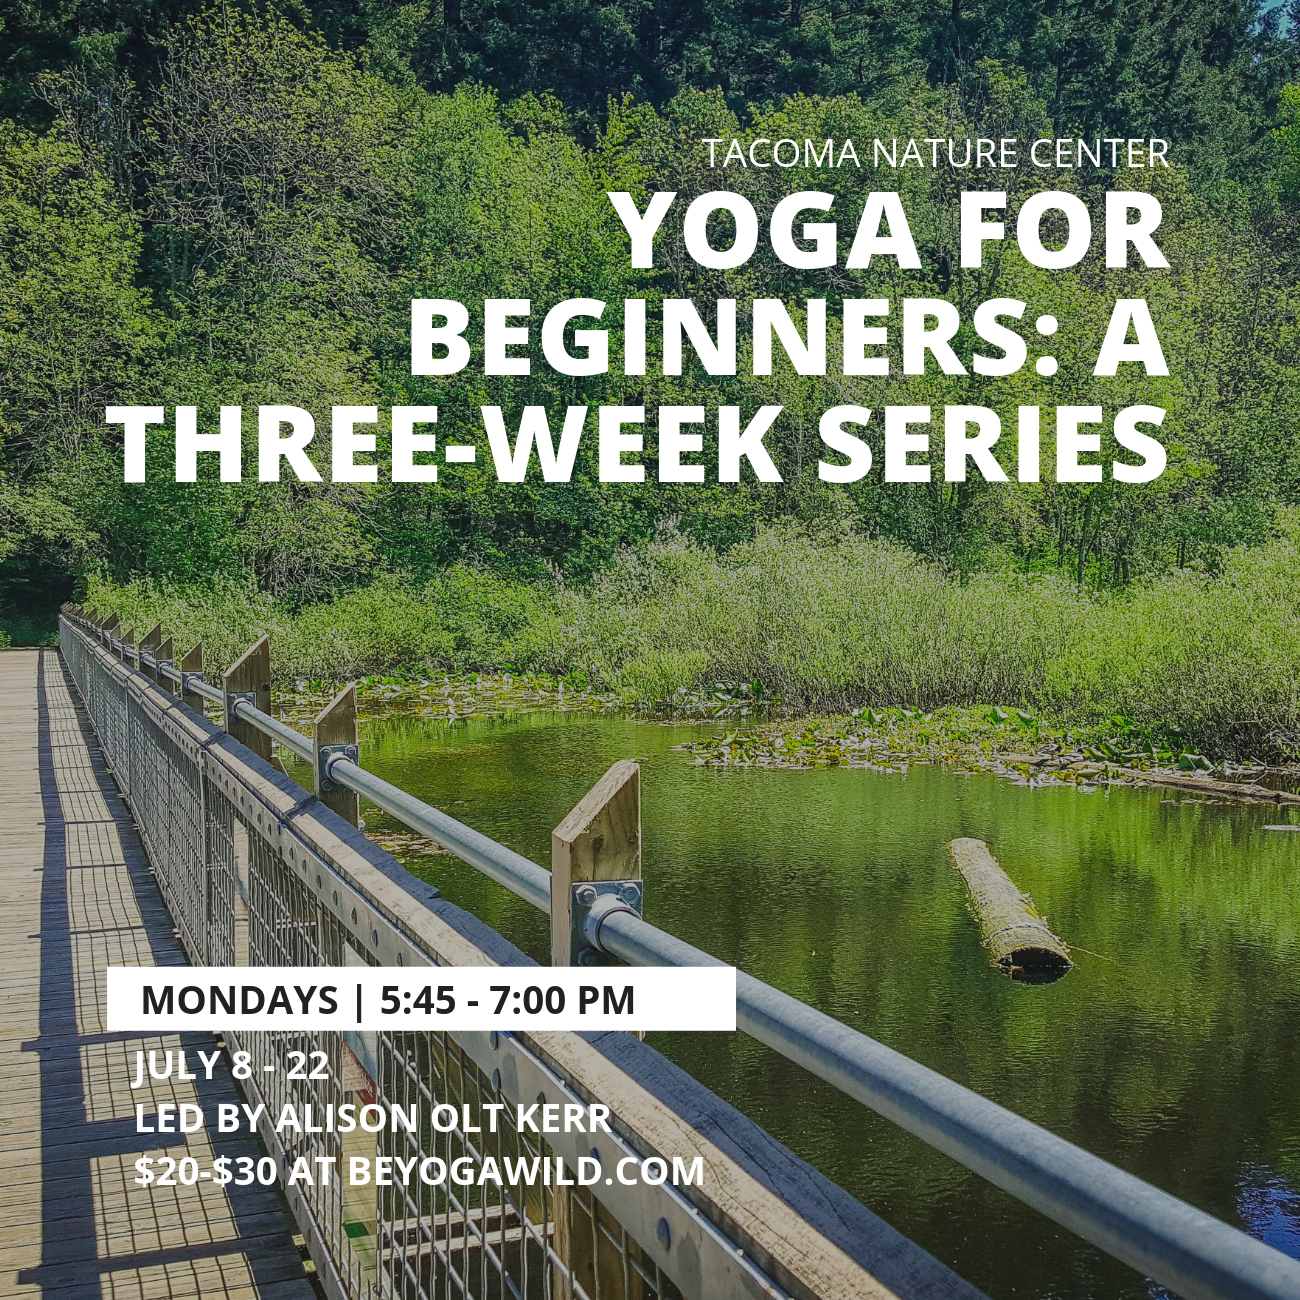 Yoga for Beginners: A Three-Week Series